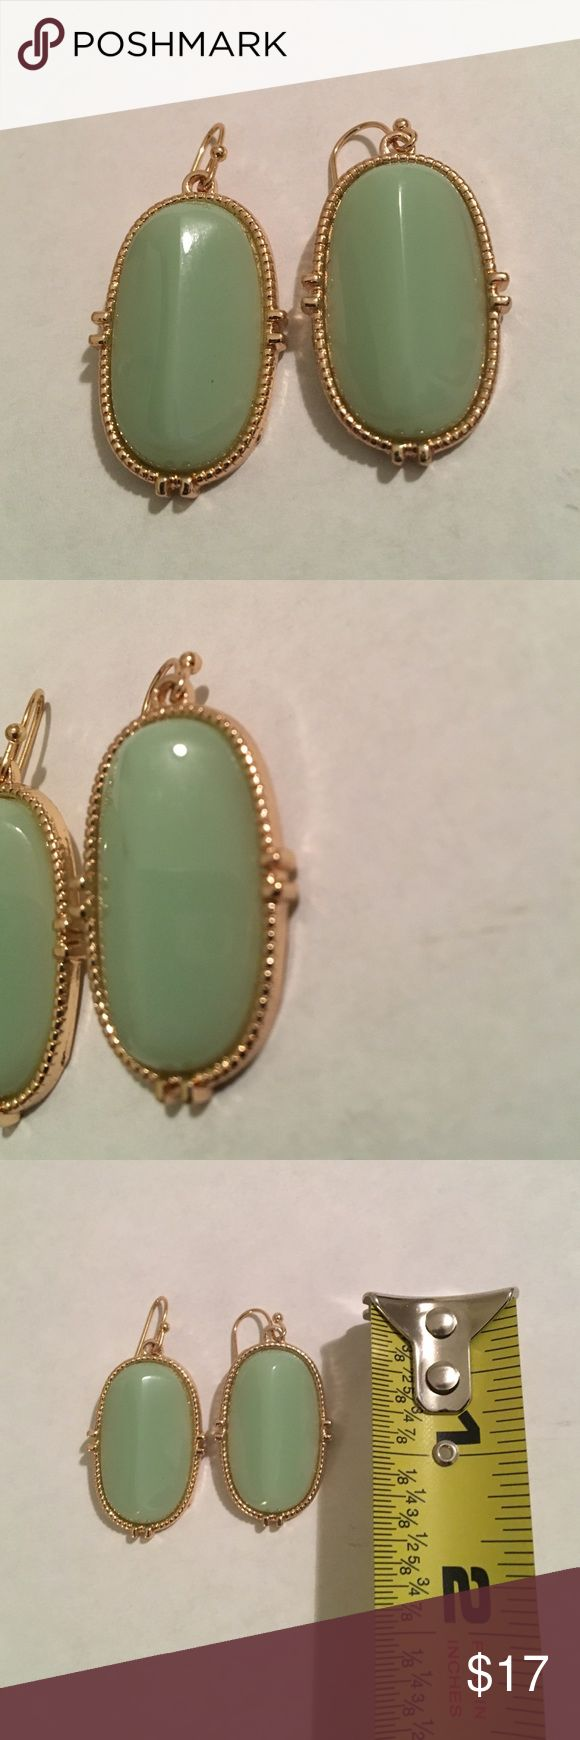 💕💕Gold And Simulated Jade Earrings NWOT Stunning Gold Tone Earrings Showcase A Light Green Simulated Jade Stone 💕💕 Jewelry Earrings